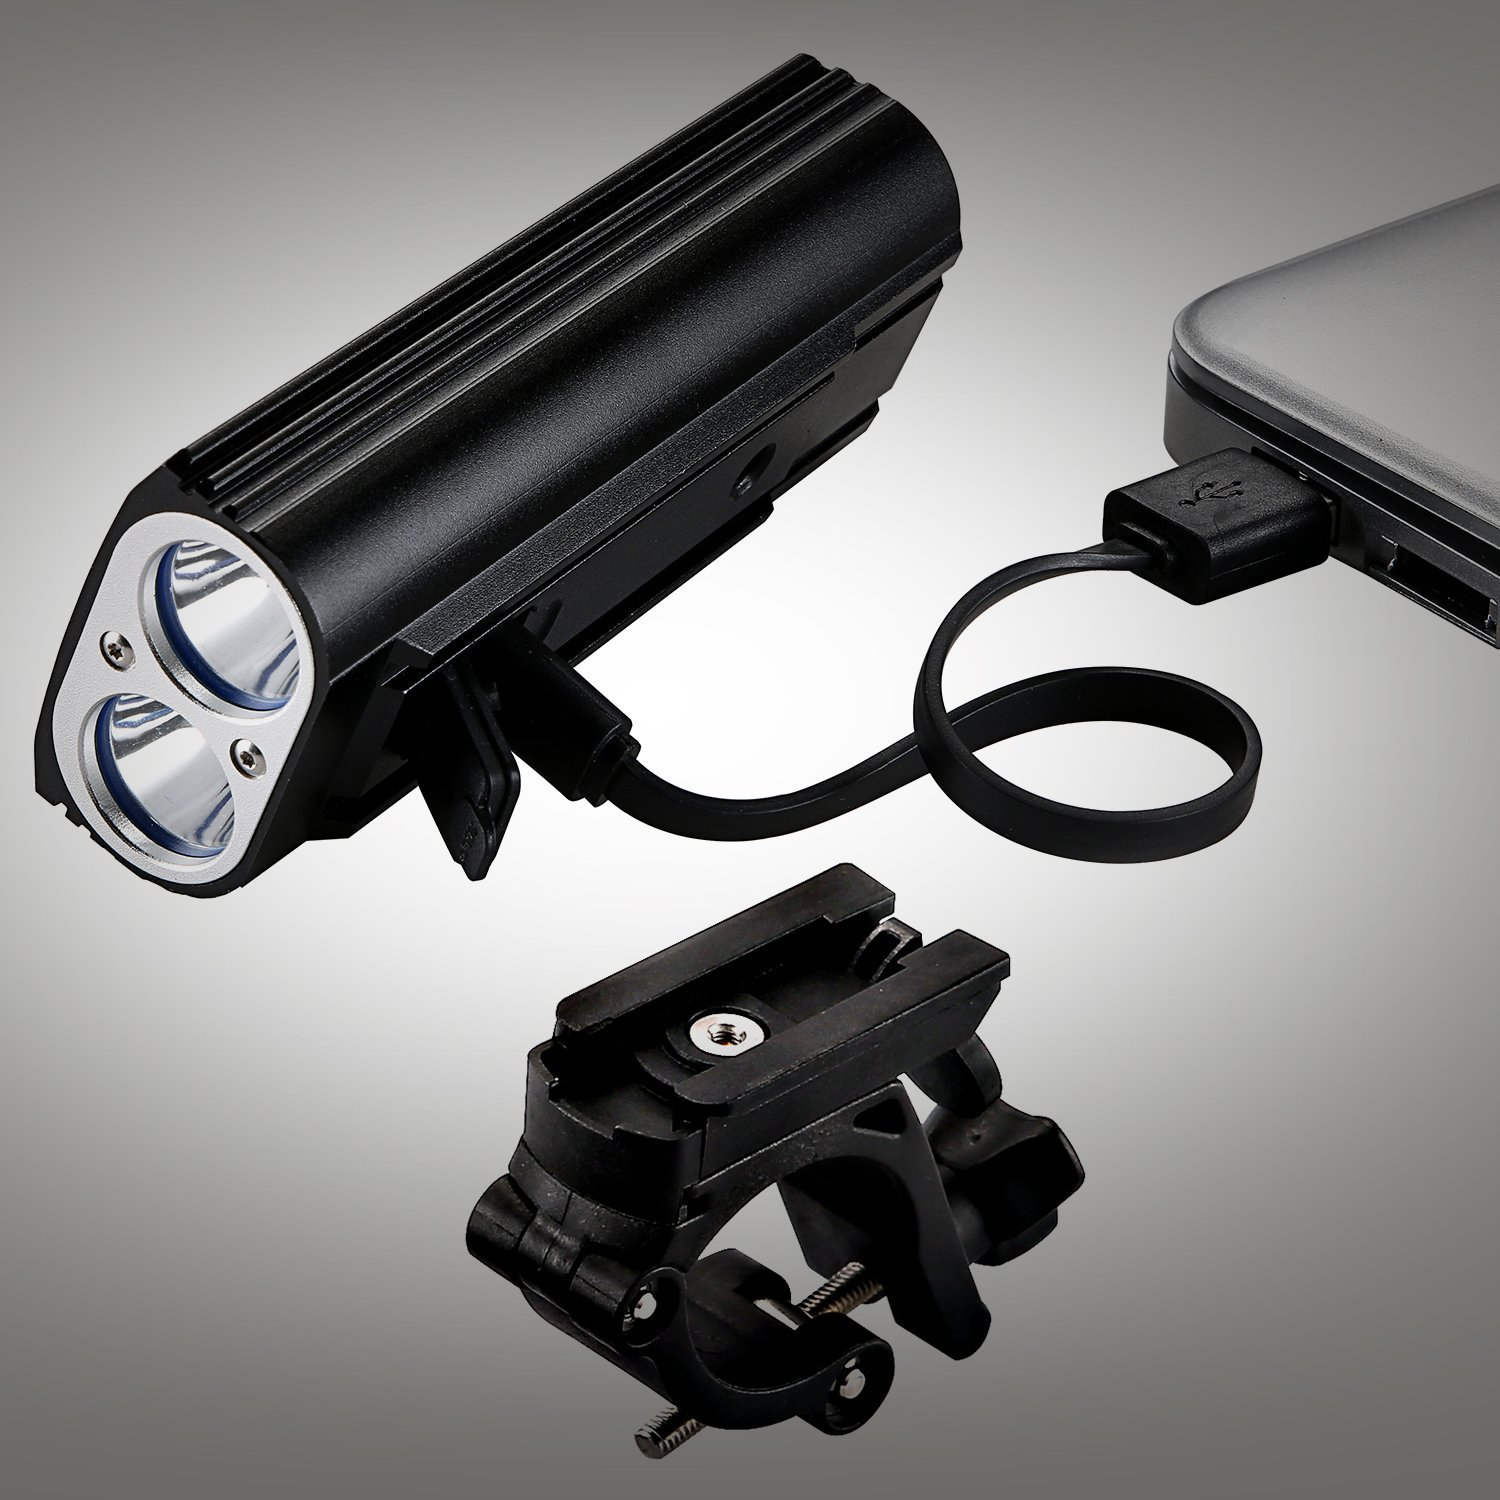 LED Rechargeable Bike Front Light X-8